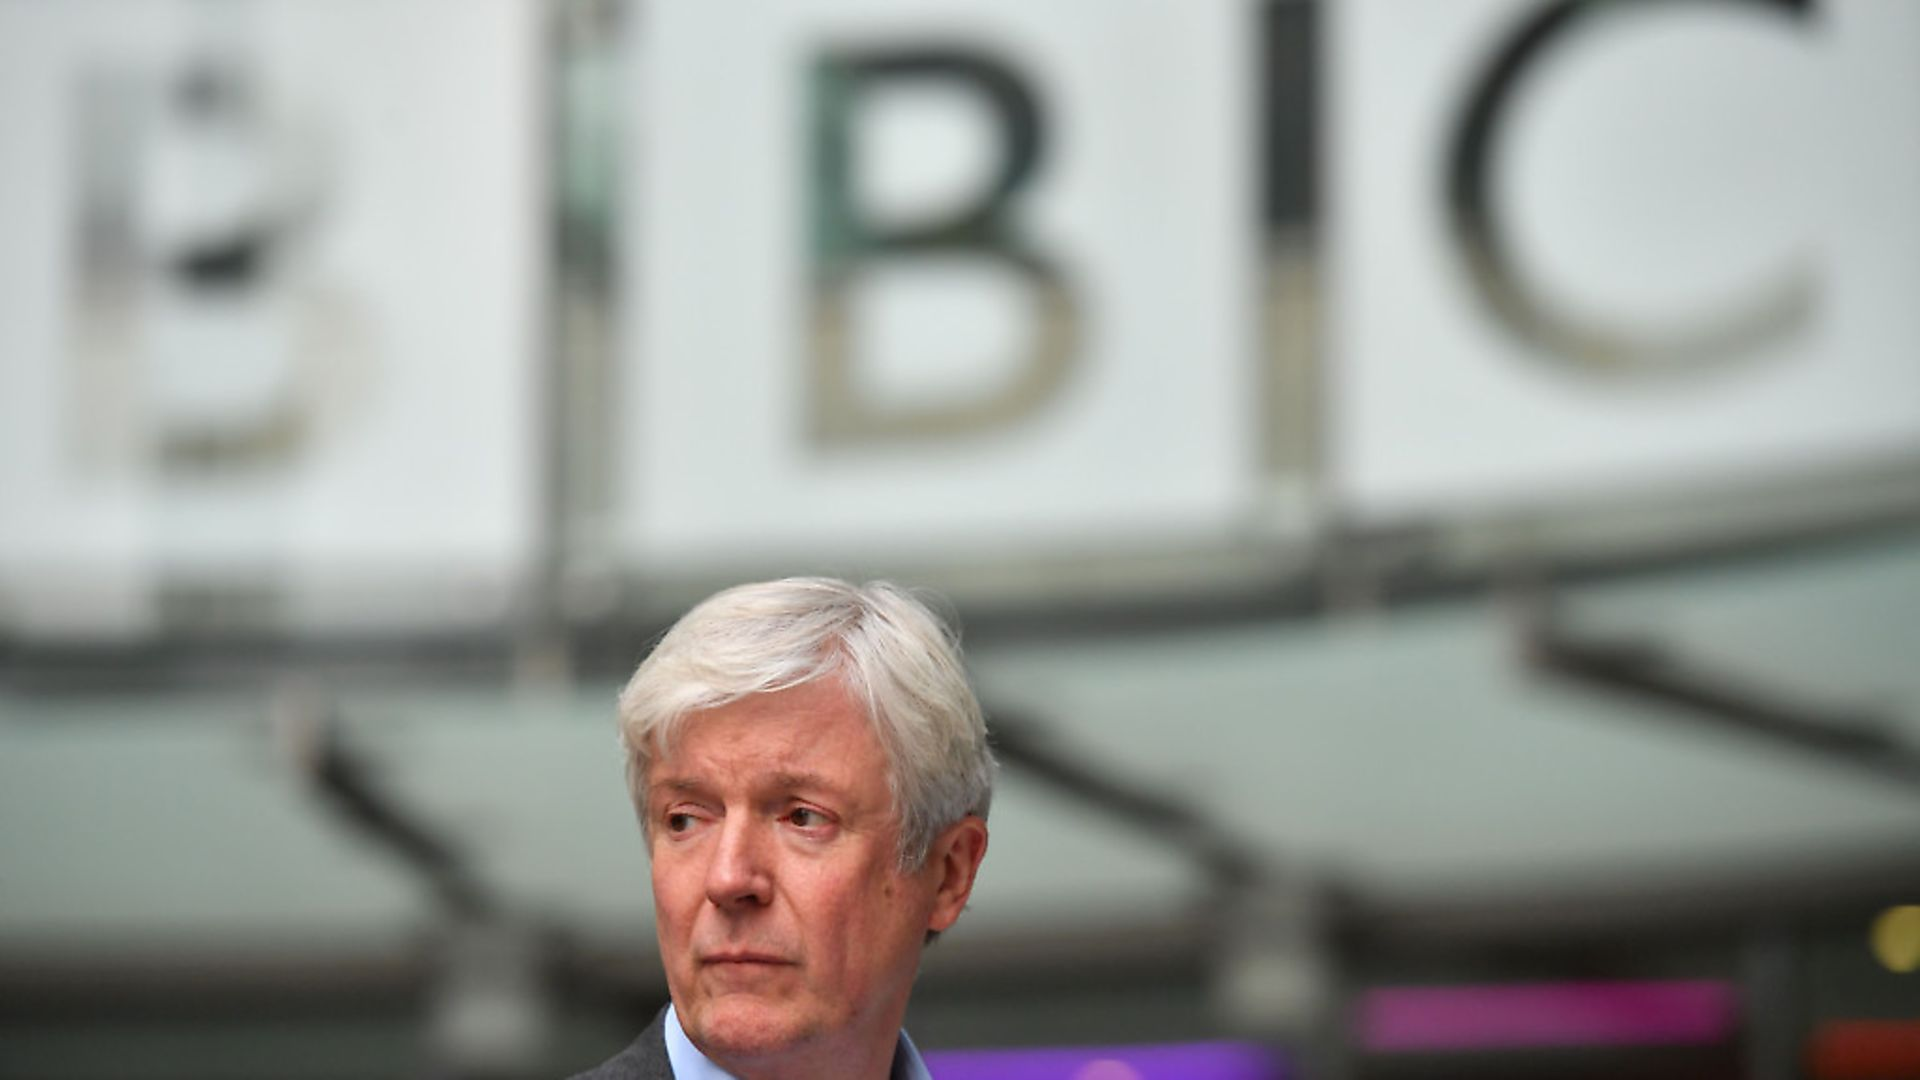 Director-General of the BBC Tony Hall seen outside the BBC's Broadcasting House in London. Picture: BEN STANSALL/AFP/Getty Images) - Credit: AFP/Getty Images